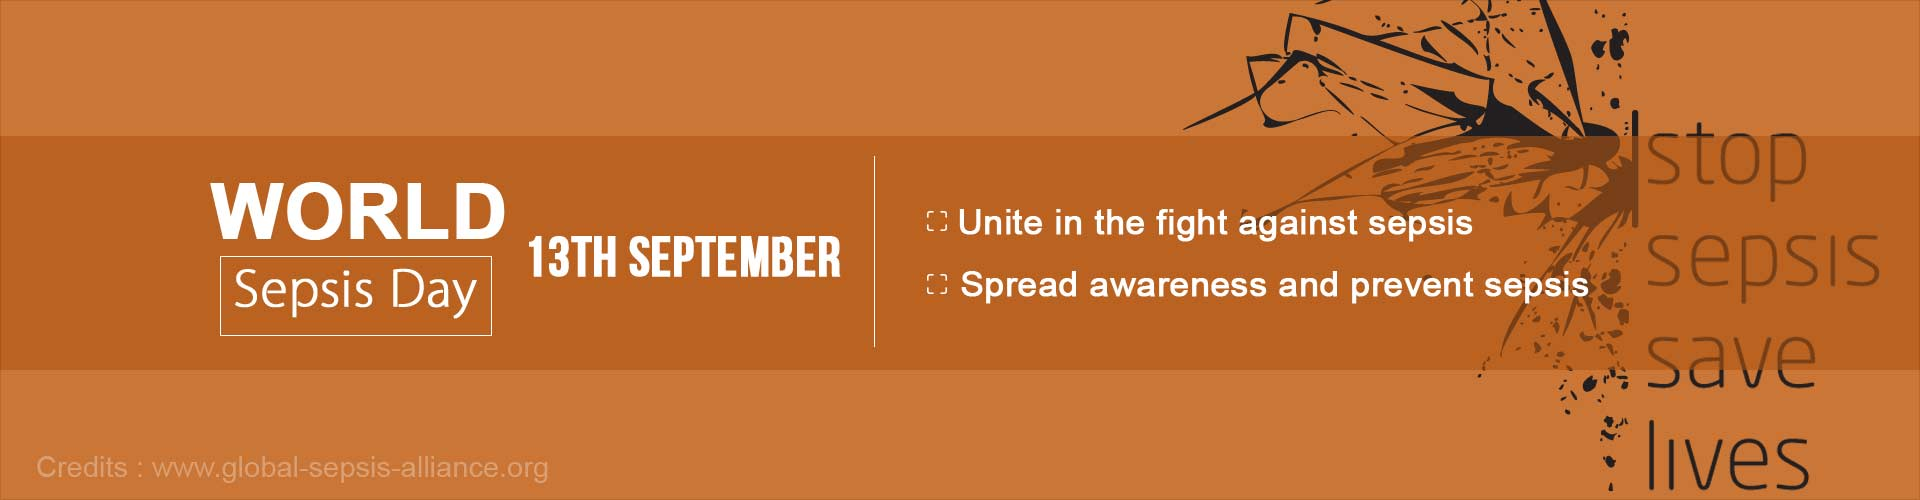 World sepsis day: 13th September